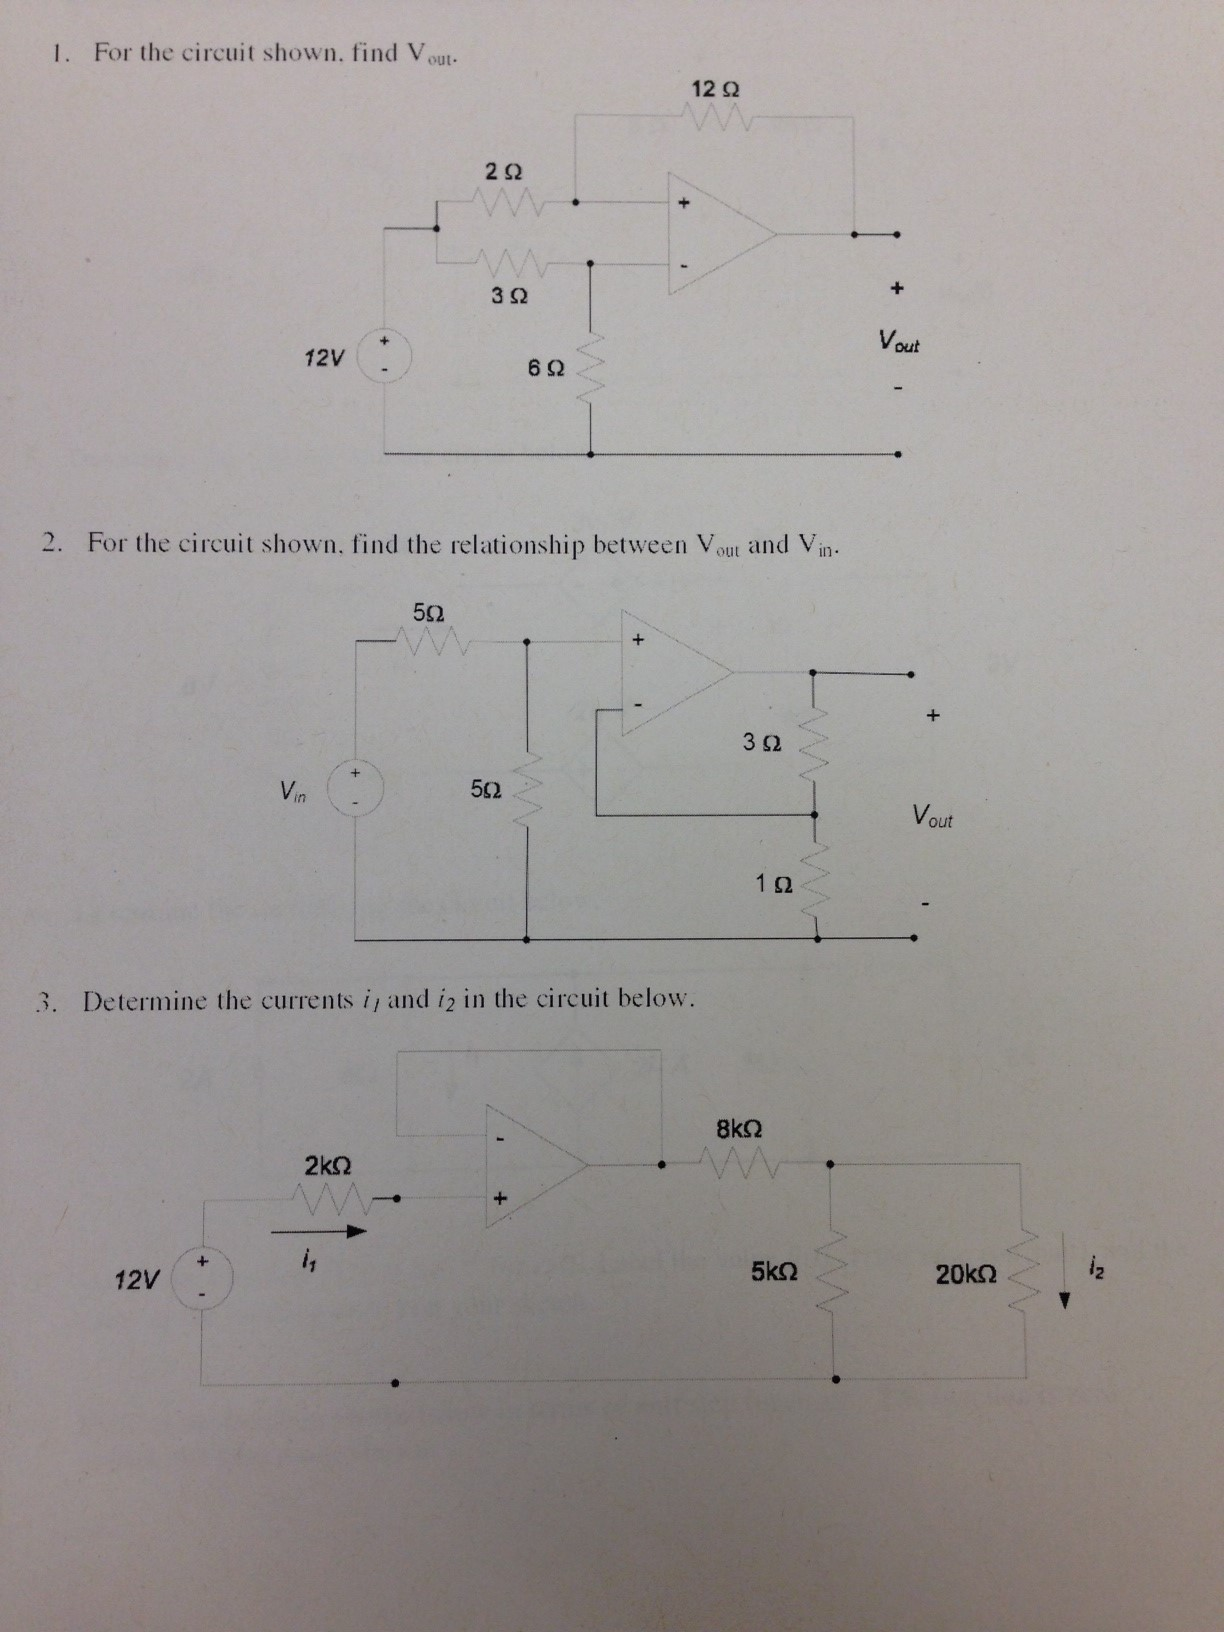 For the circuit shown, find Vout. Find the circui